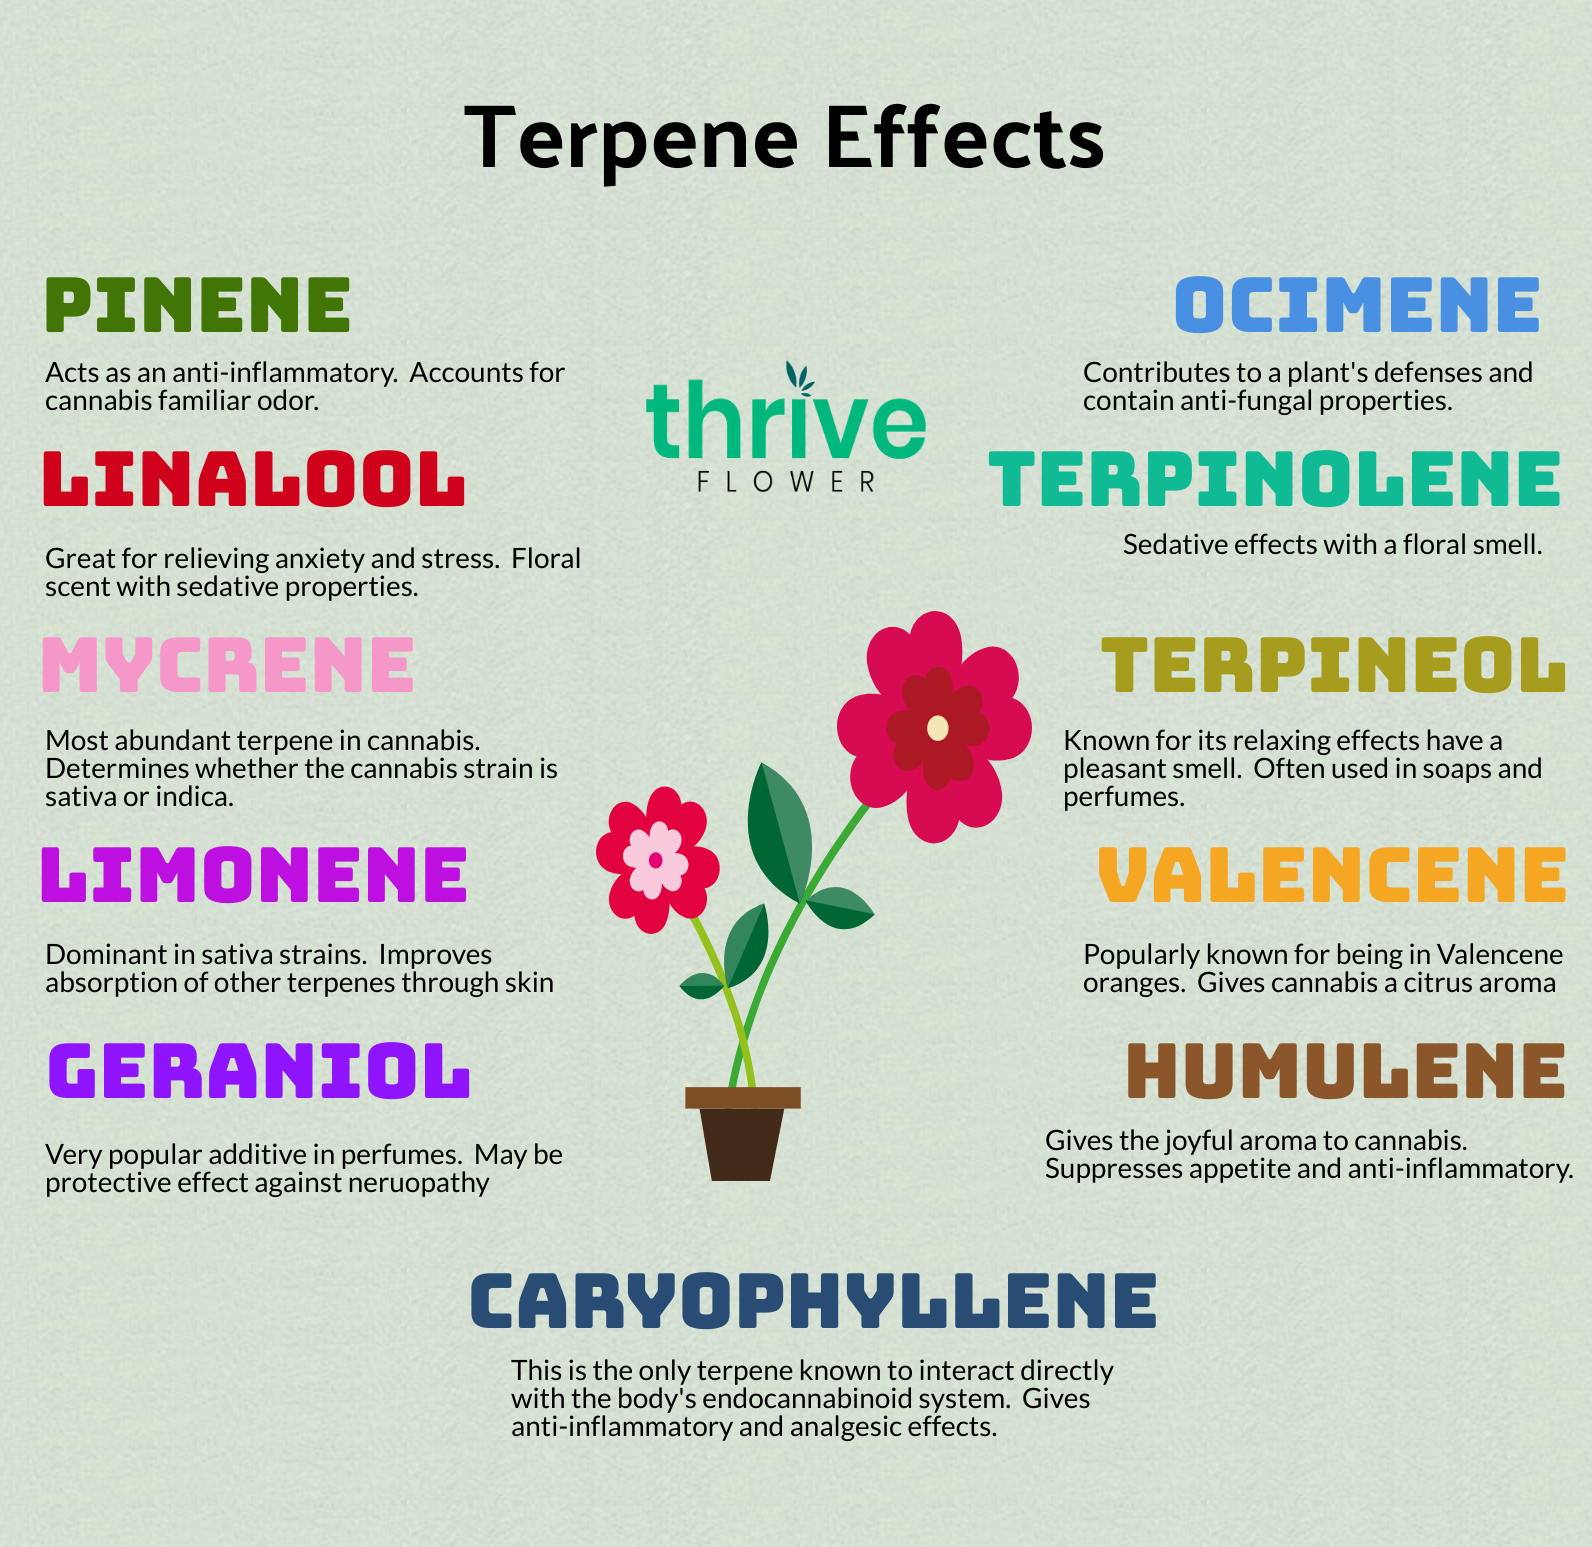 Effects of Terpenes